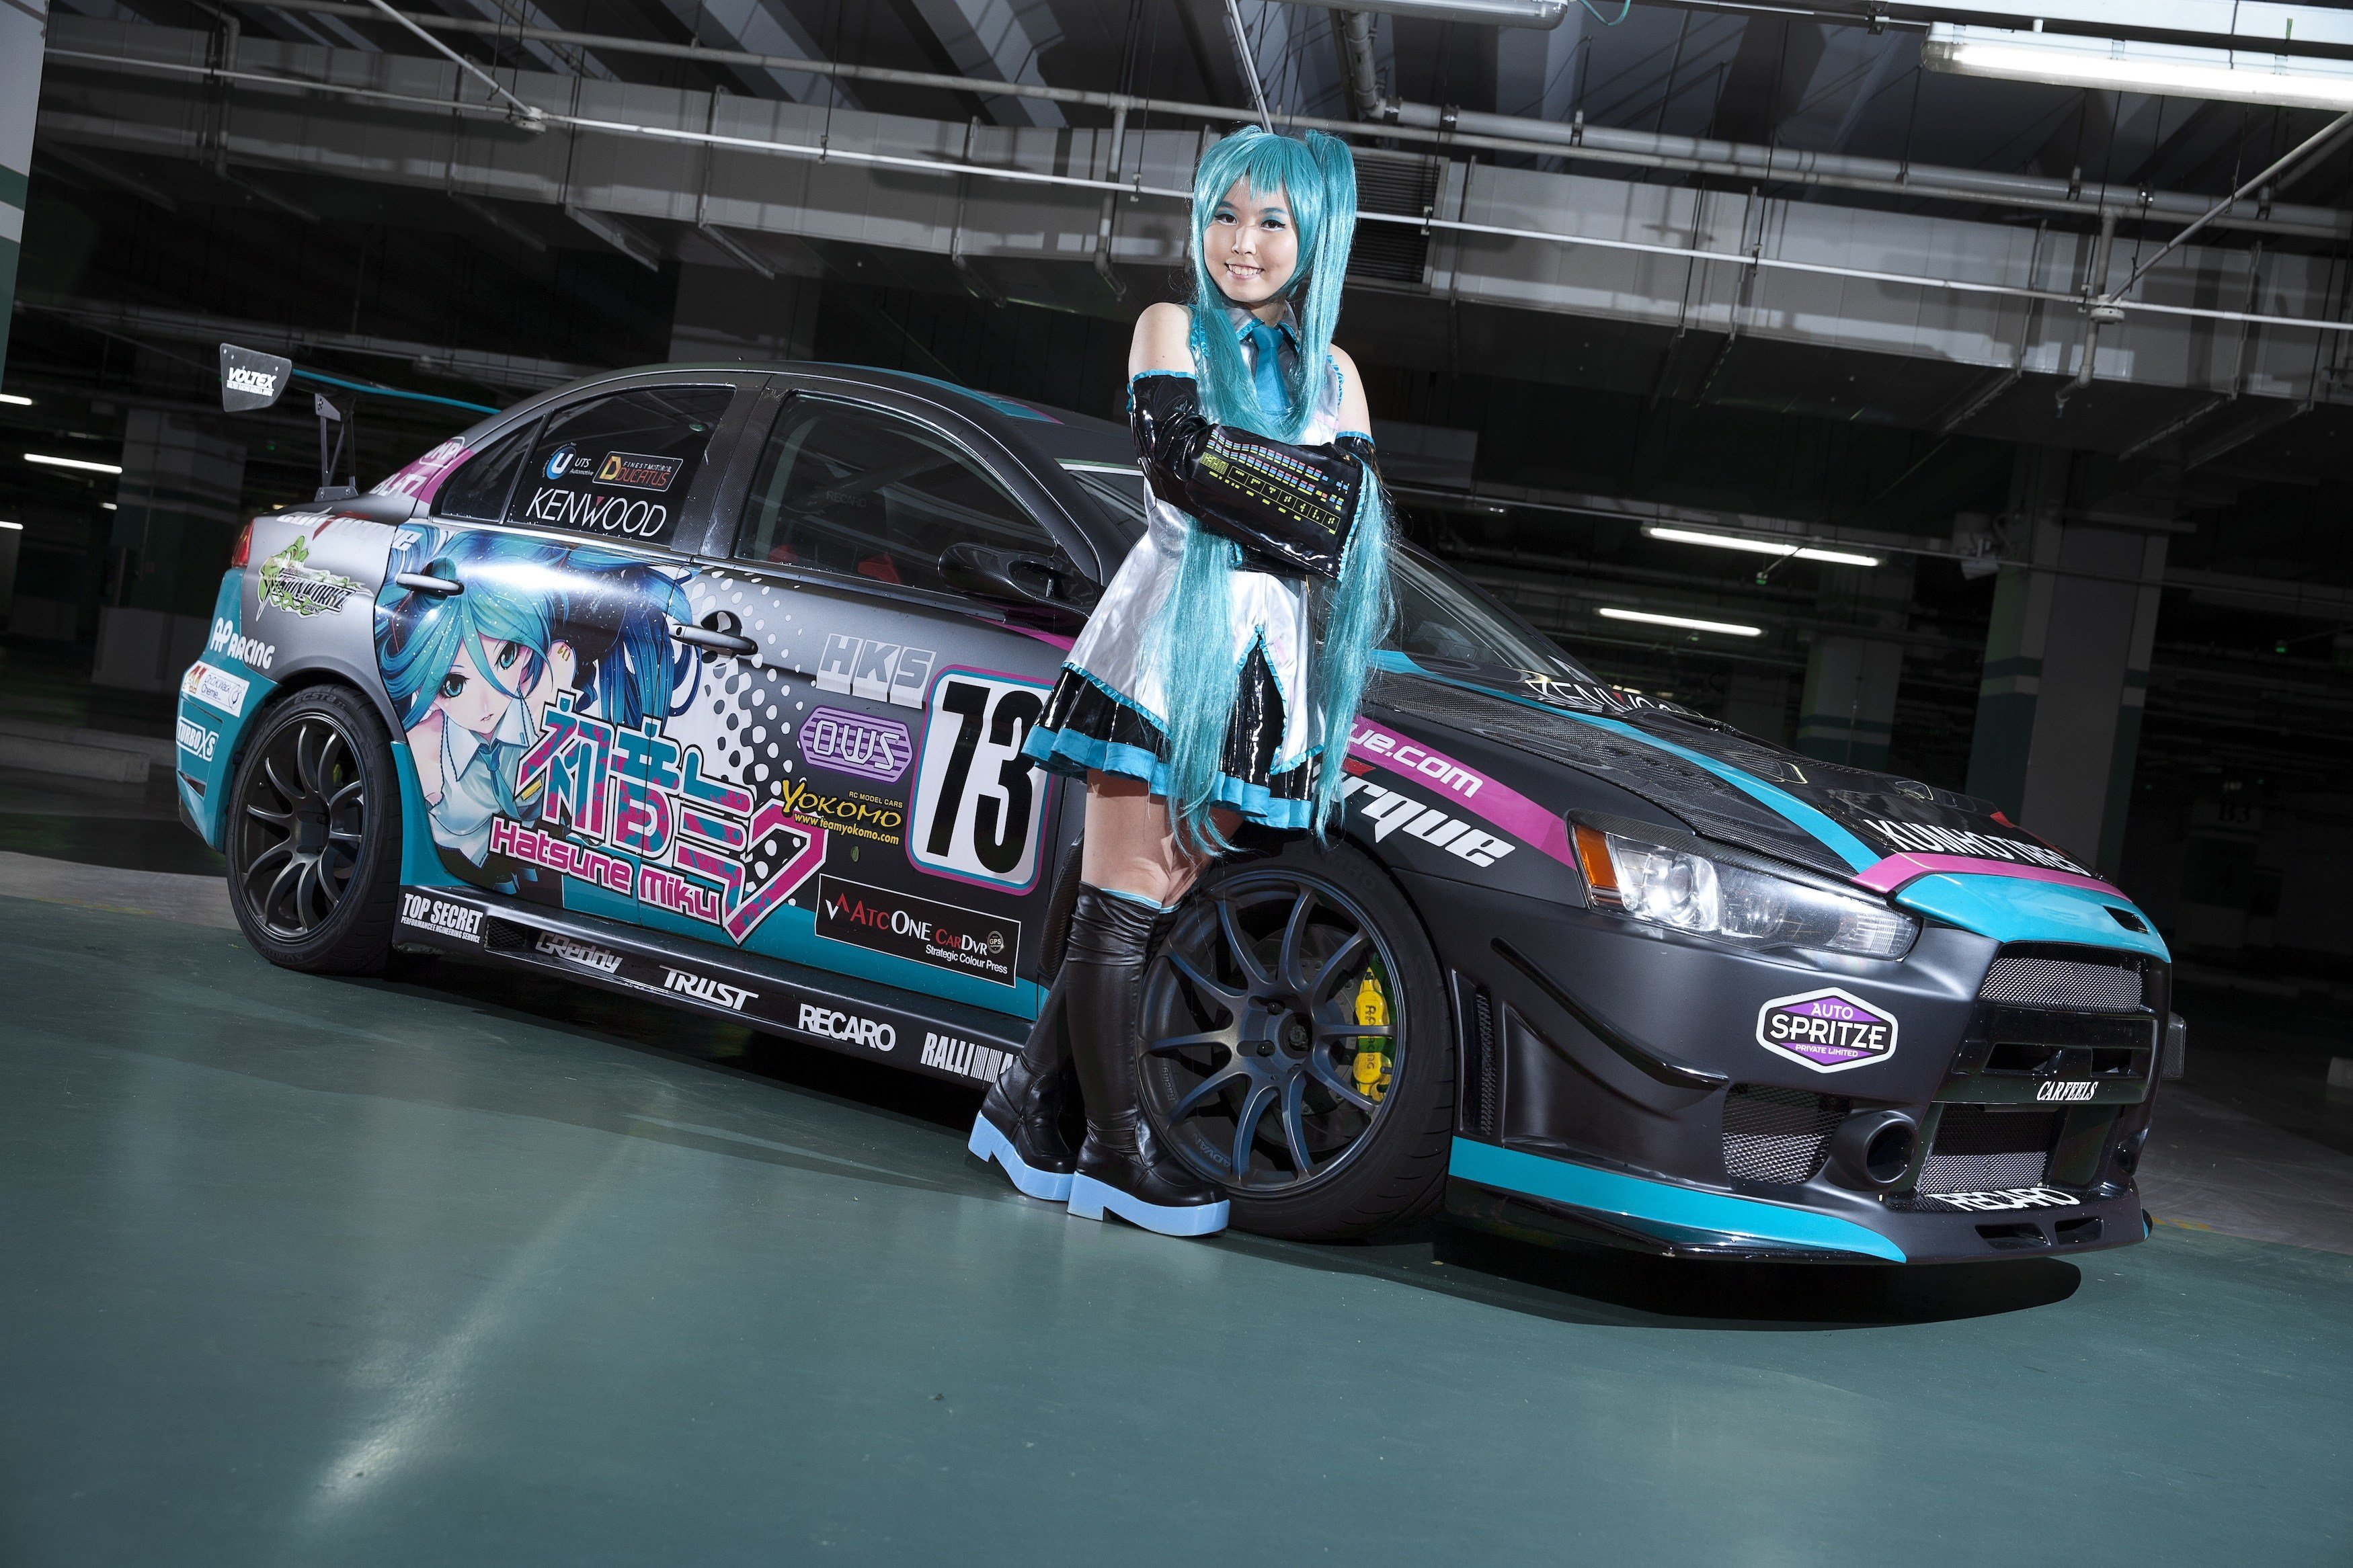 New Cosplay Themed Car Photoshoot Shereen Leung On This Month